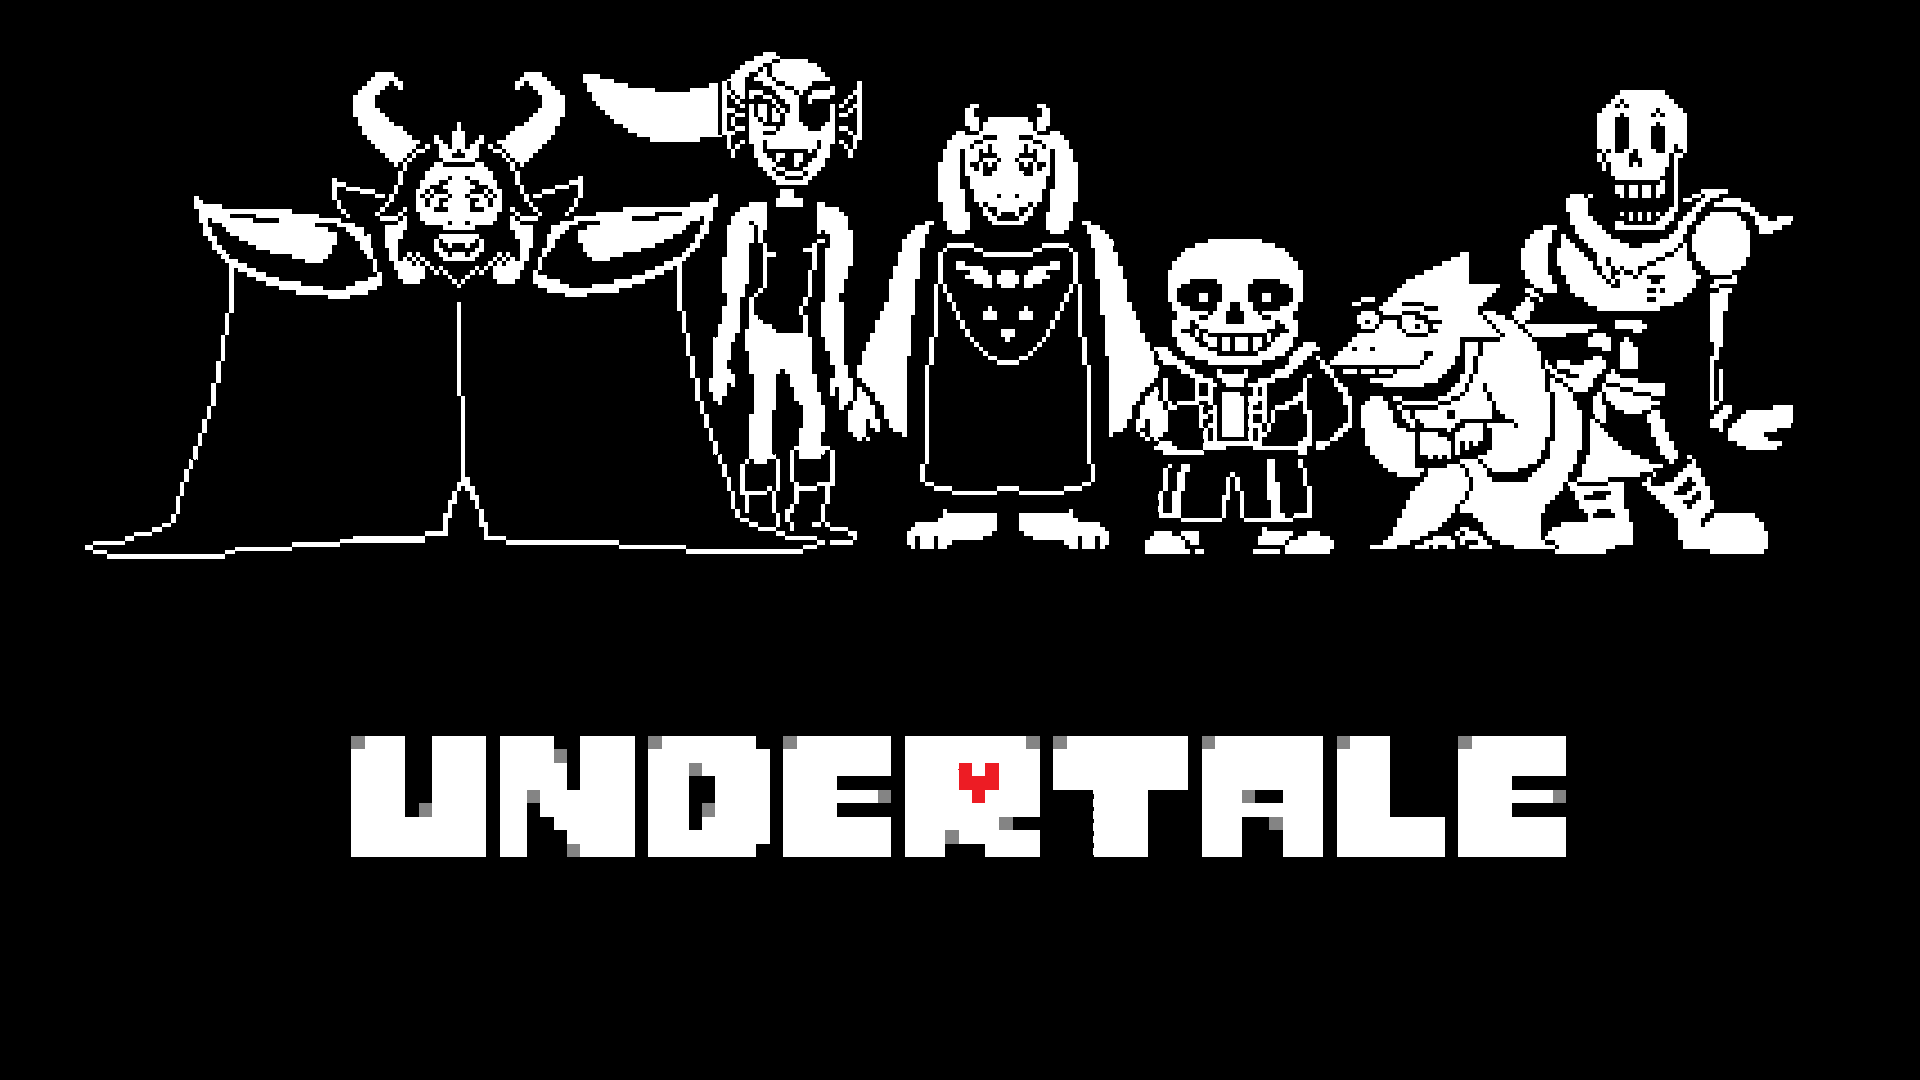 custom map maker with Undertale Wallpaper Hd on Imaginary Worlds Maps together with Cube Illusion Wood Veneer Pattern further Ep 19 Lego Boardgames together with Denim Patchwork Pattern further pany Profile Presentations Services.